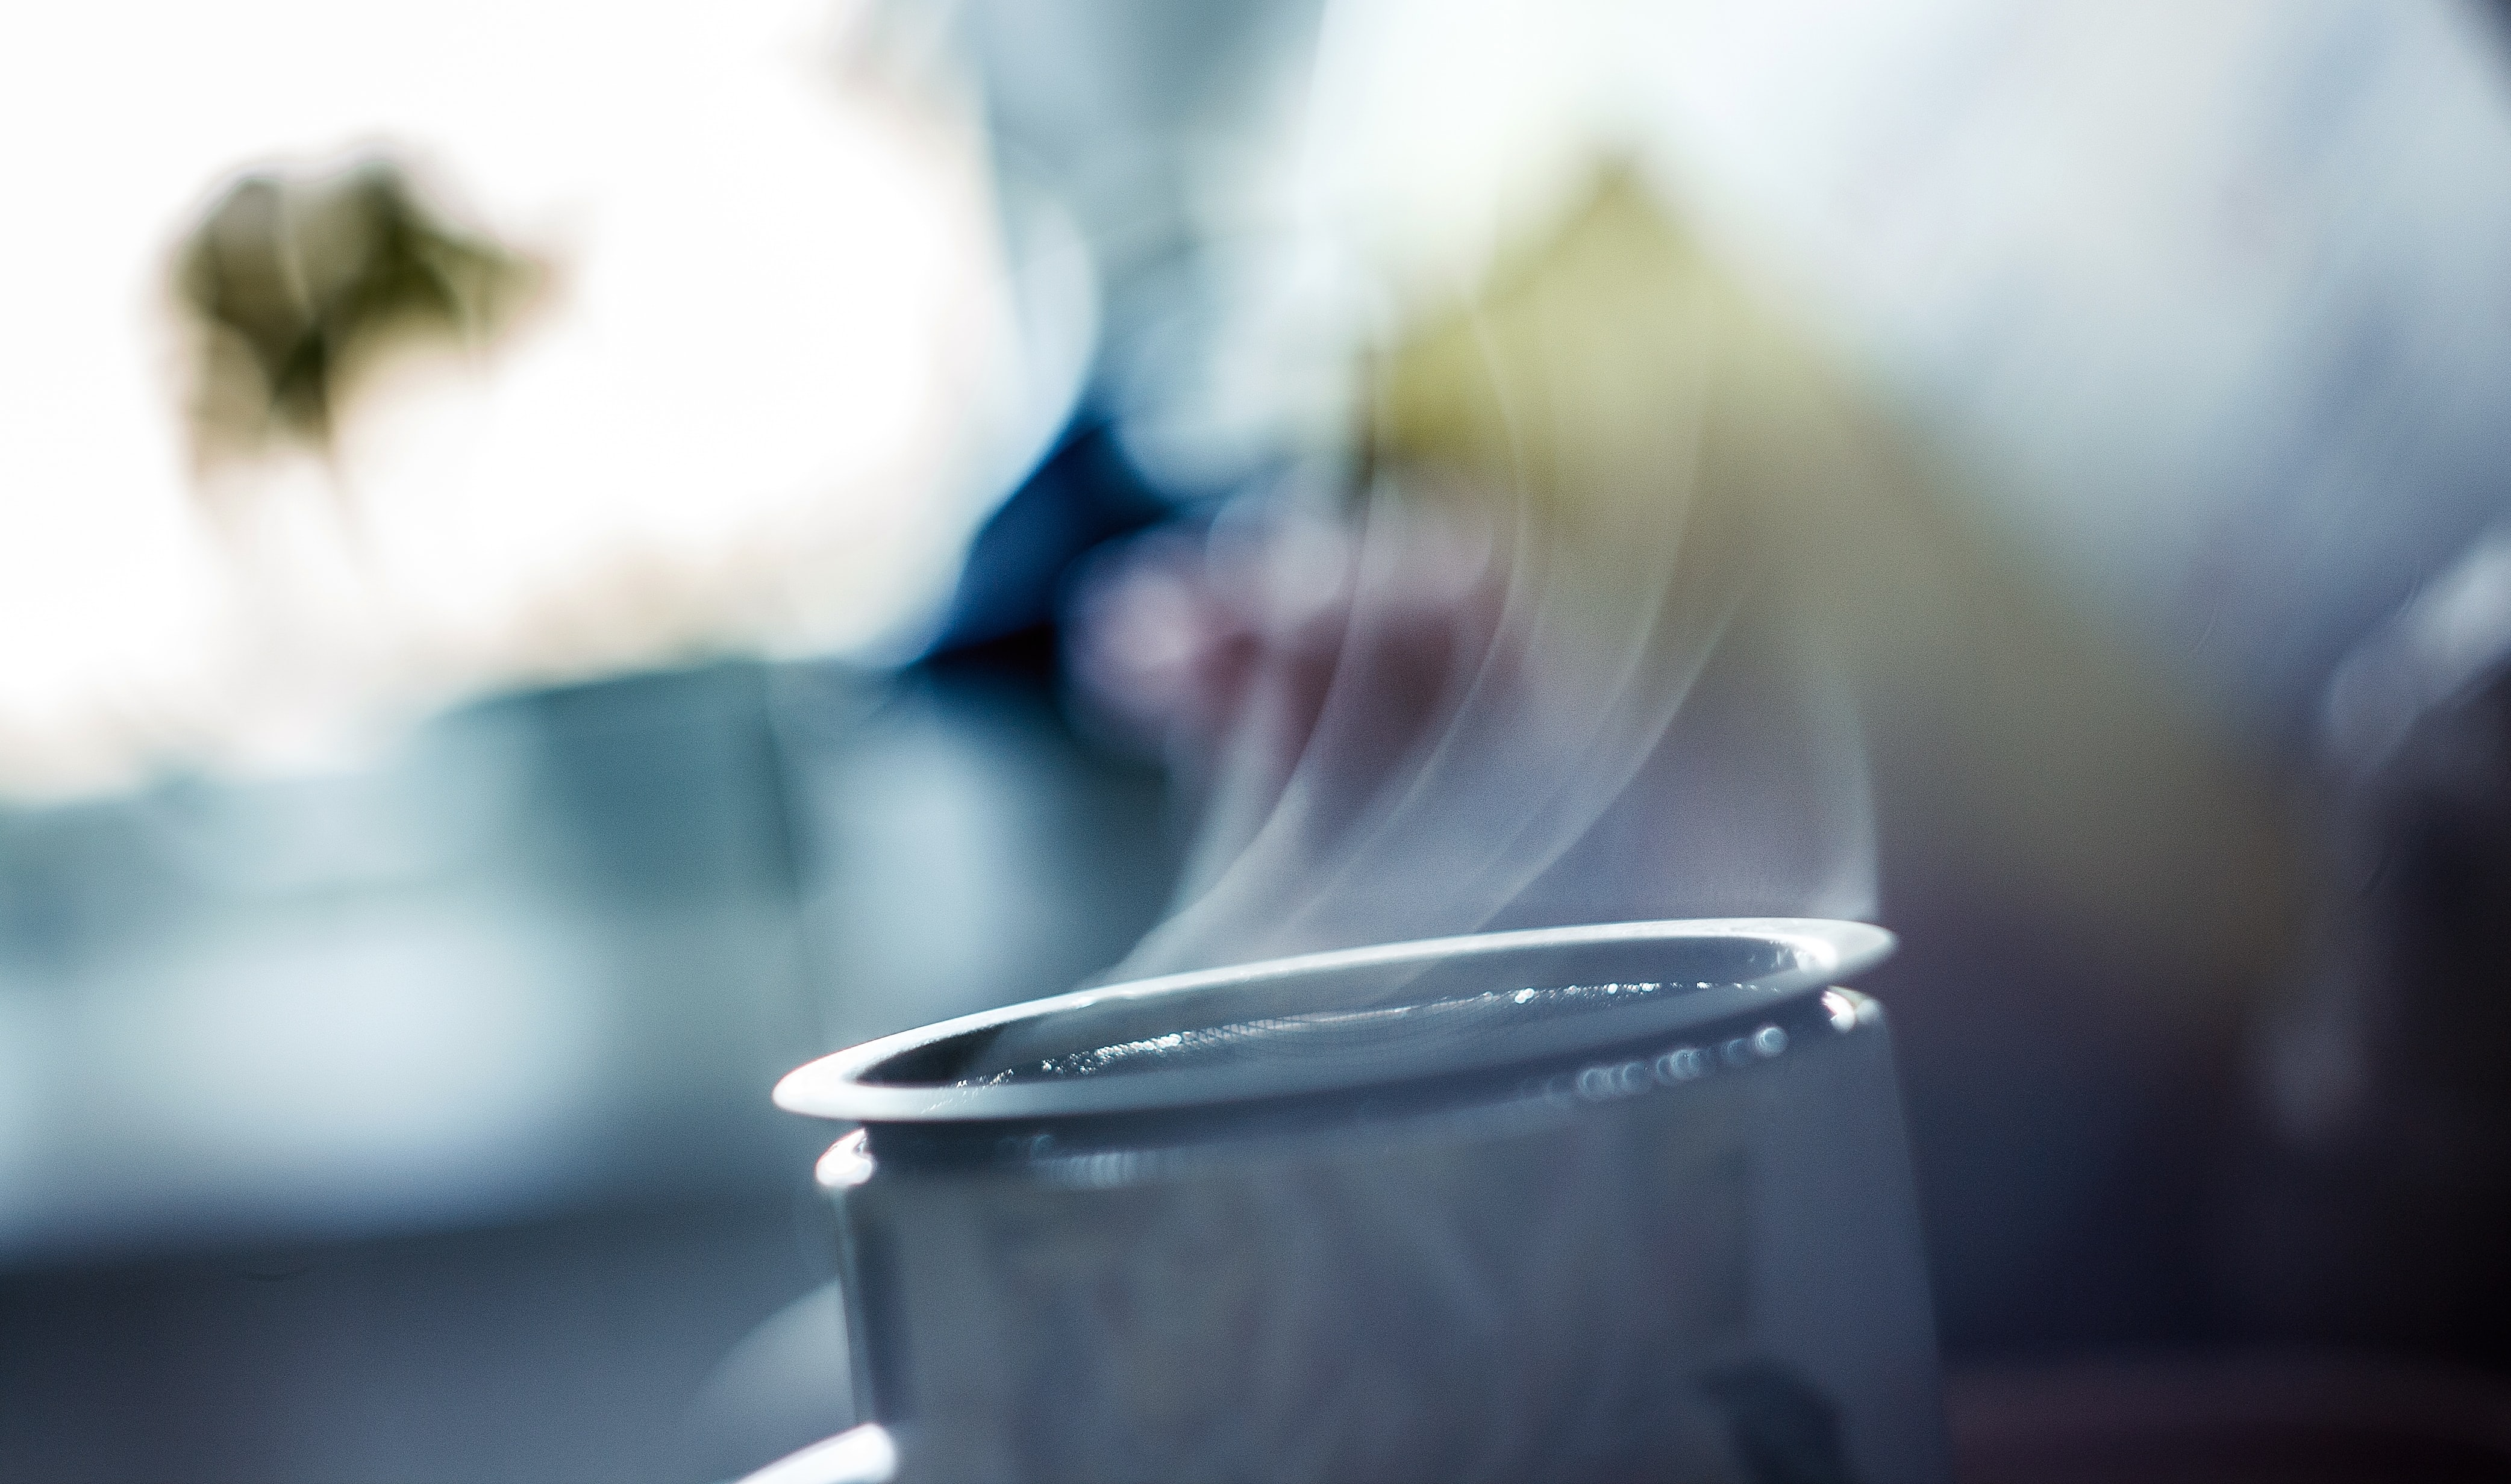 Top of a mug steaming with a blurred outdoorsy background